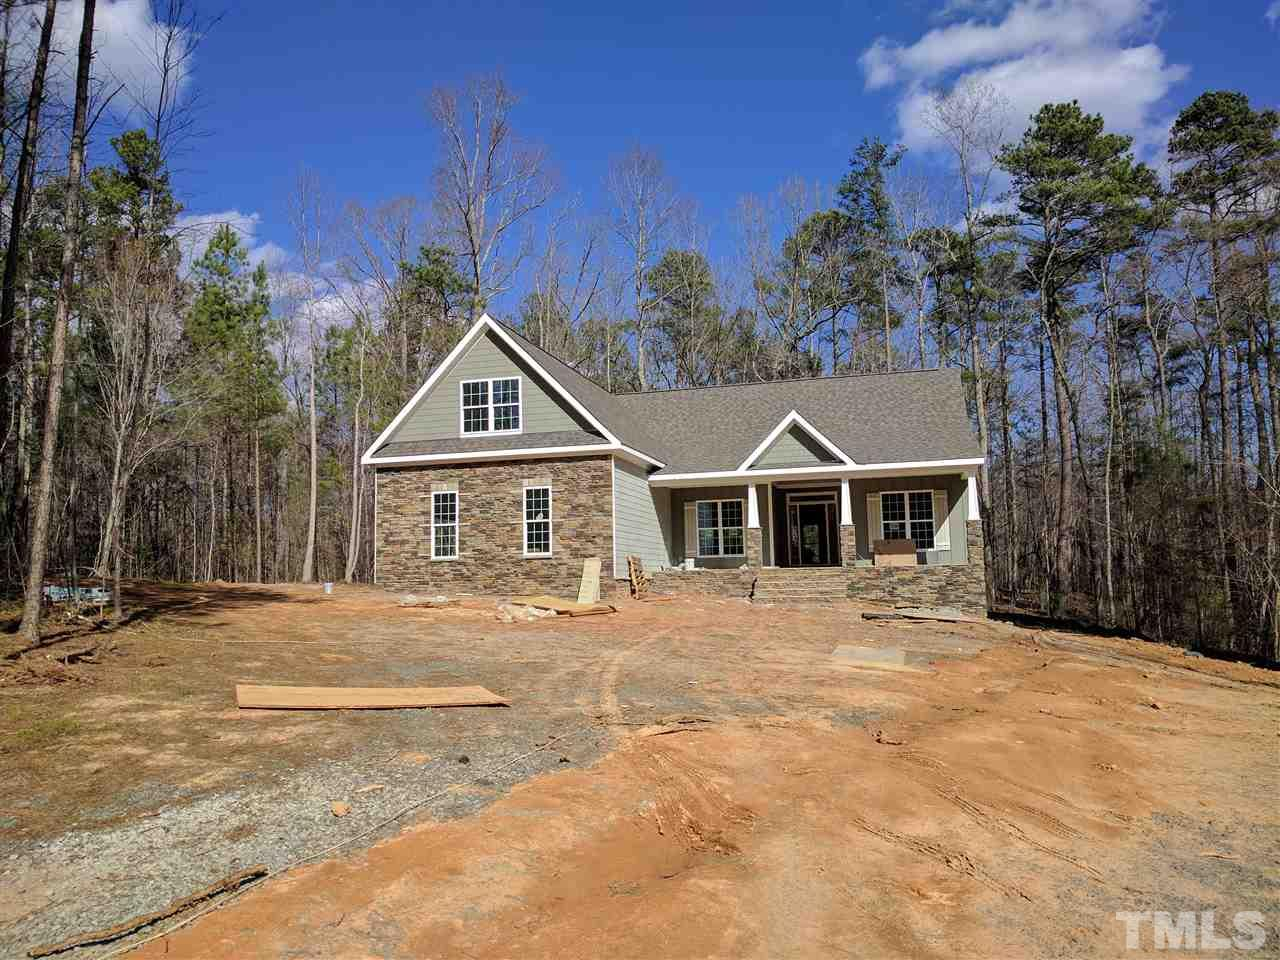 224 Valley View Lane (Lot 15), Pittsboro, NC 27312